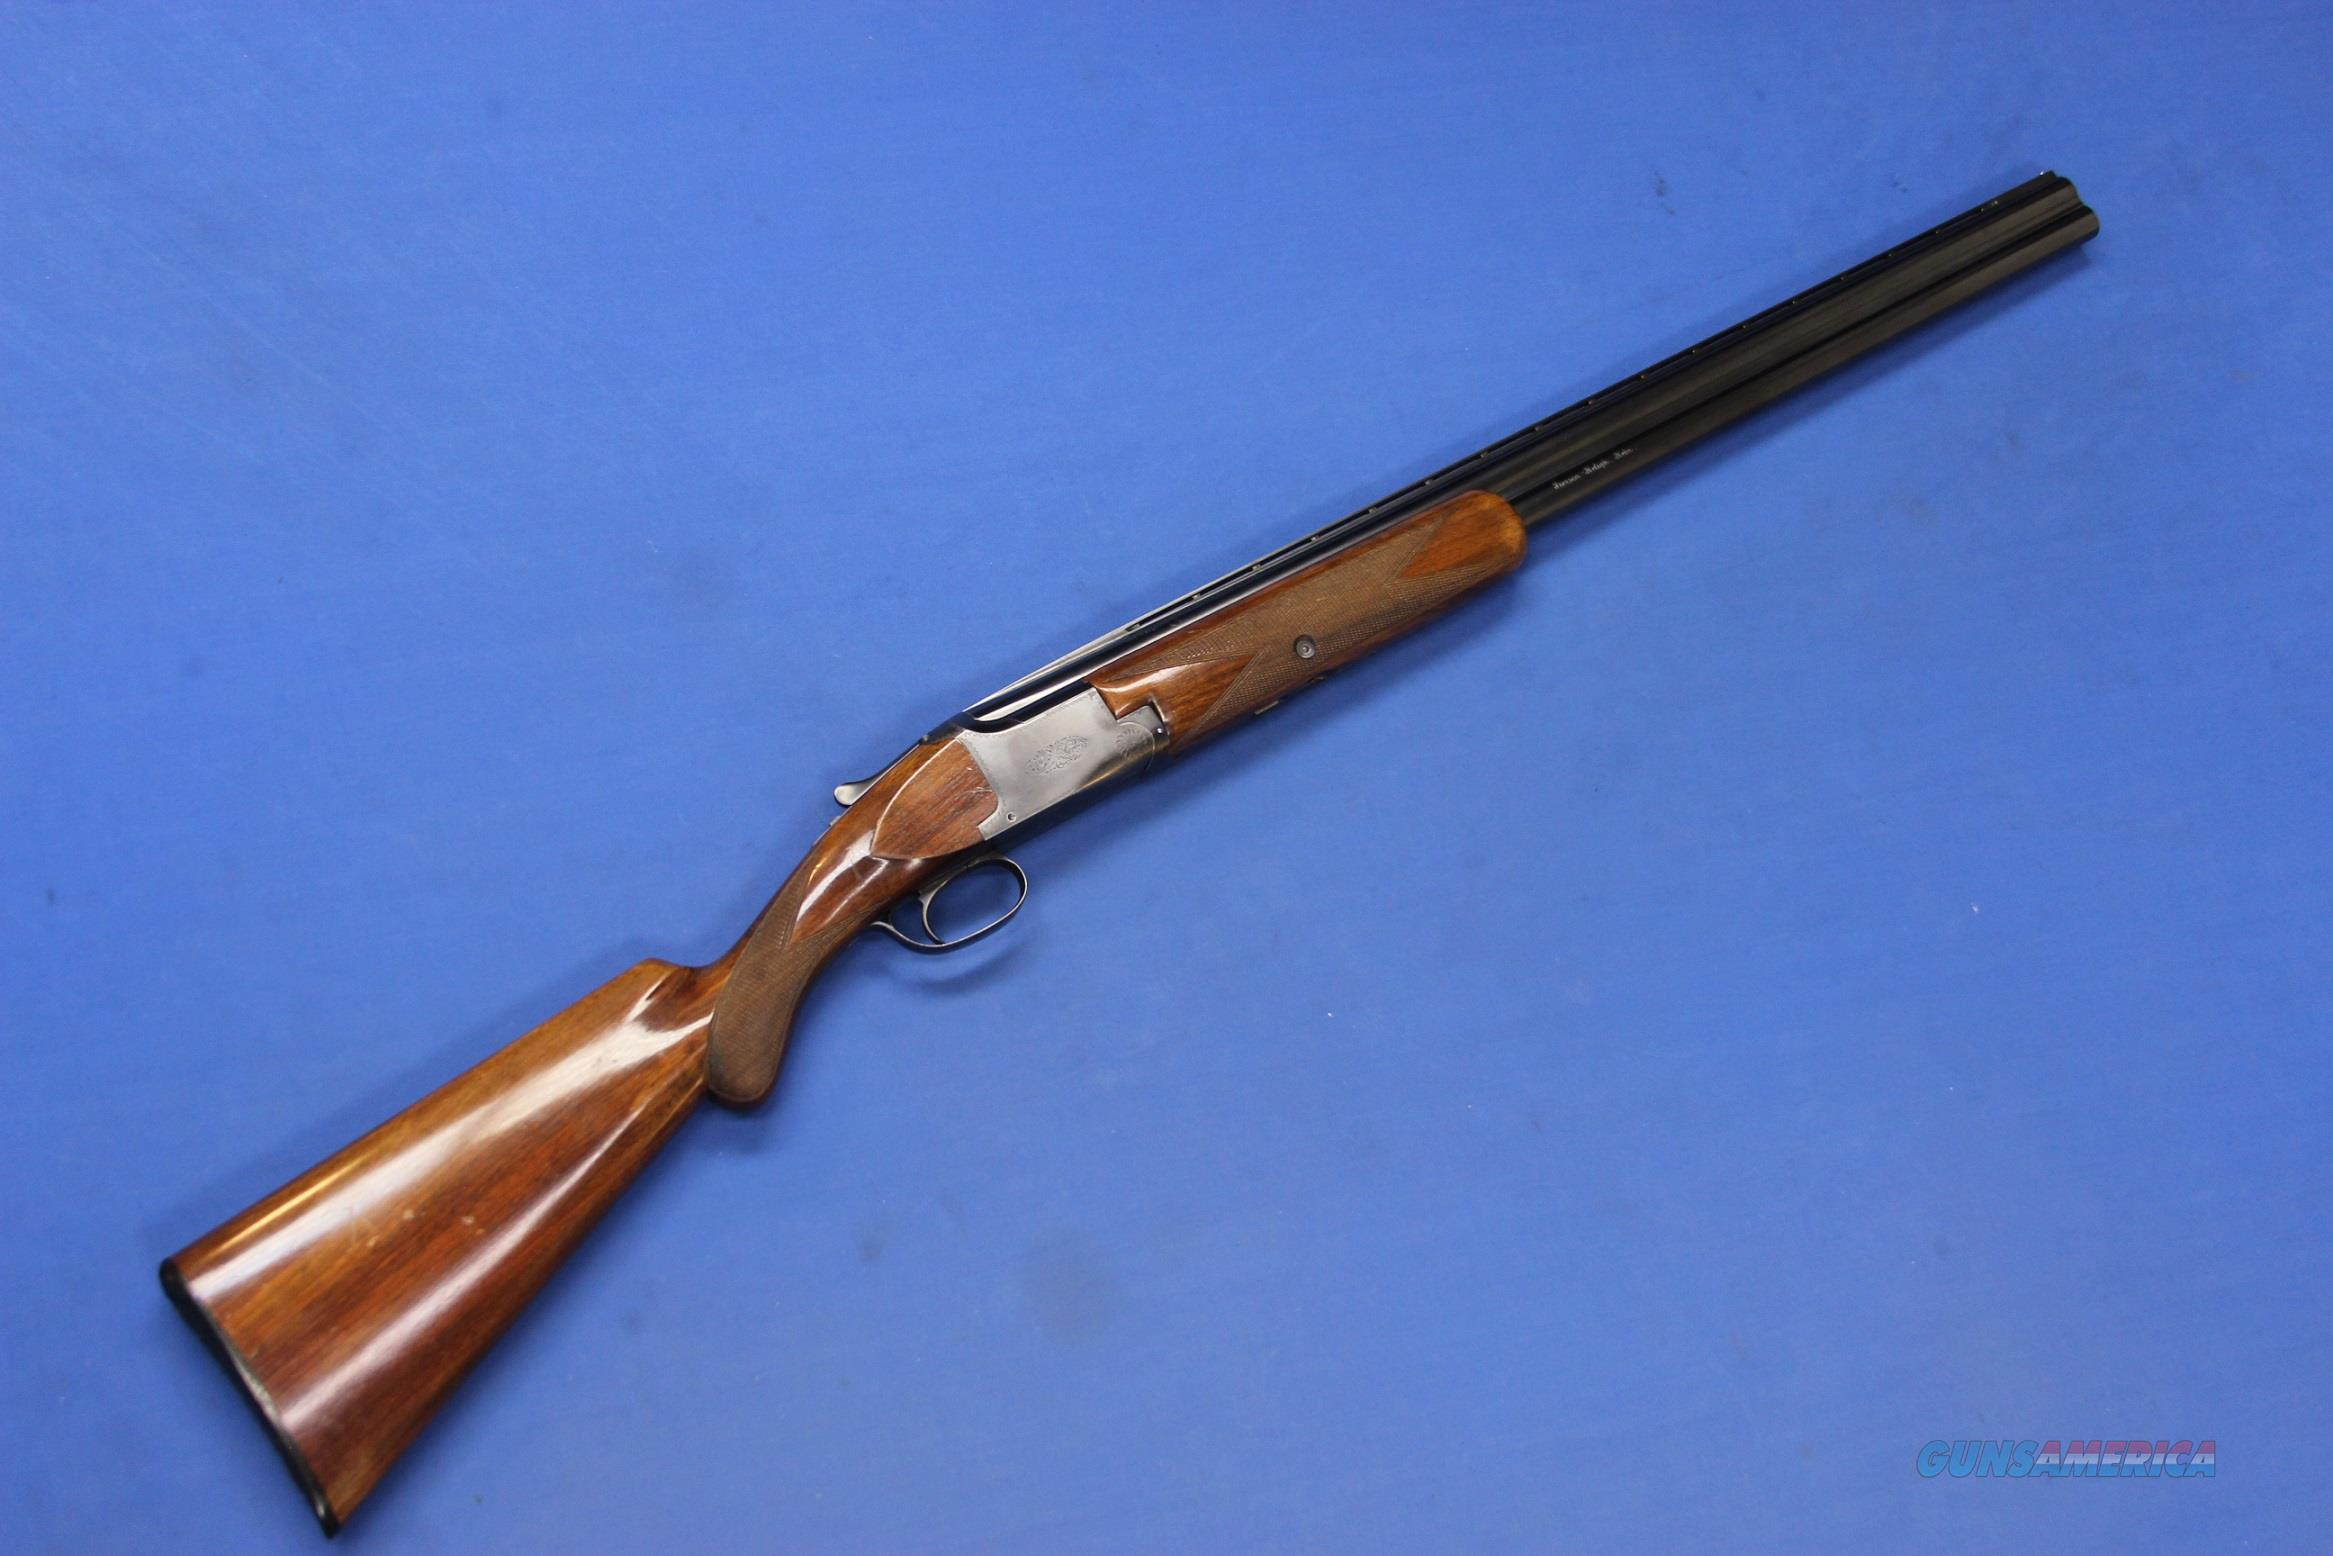 "BROWNING SUPERPOSED 12 GA 28"" IMP/MOD - 1951 Mfg  Guns > Shotguns > Browning Shotguns > Over Unders > Belgian Manufacture"